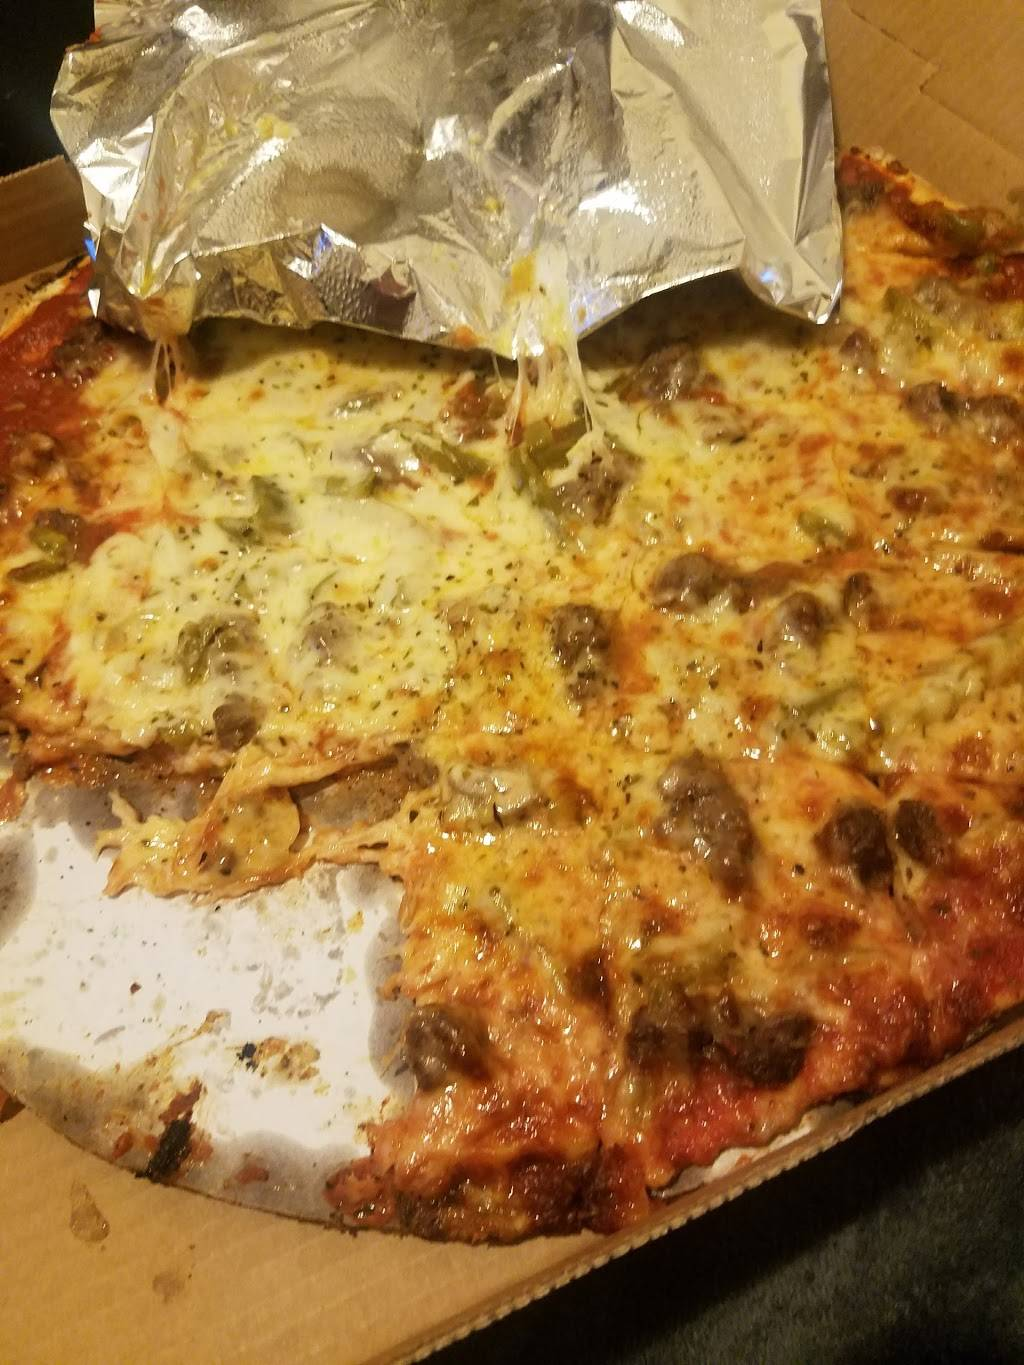 Italian Fiesta Pizzeria | restaurant | 8058 S Halsted St, Chicago, IL 60620, USA | 7736842222 OR +1 773-684-2222